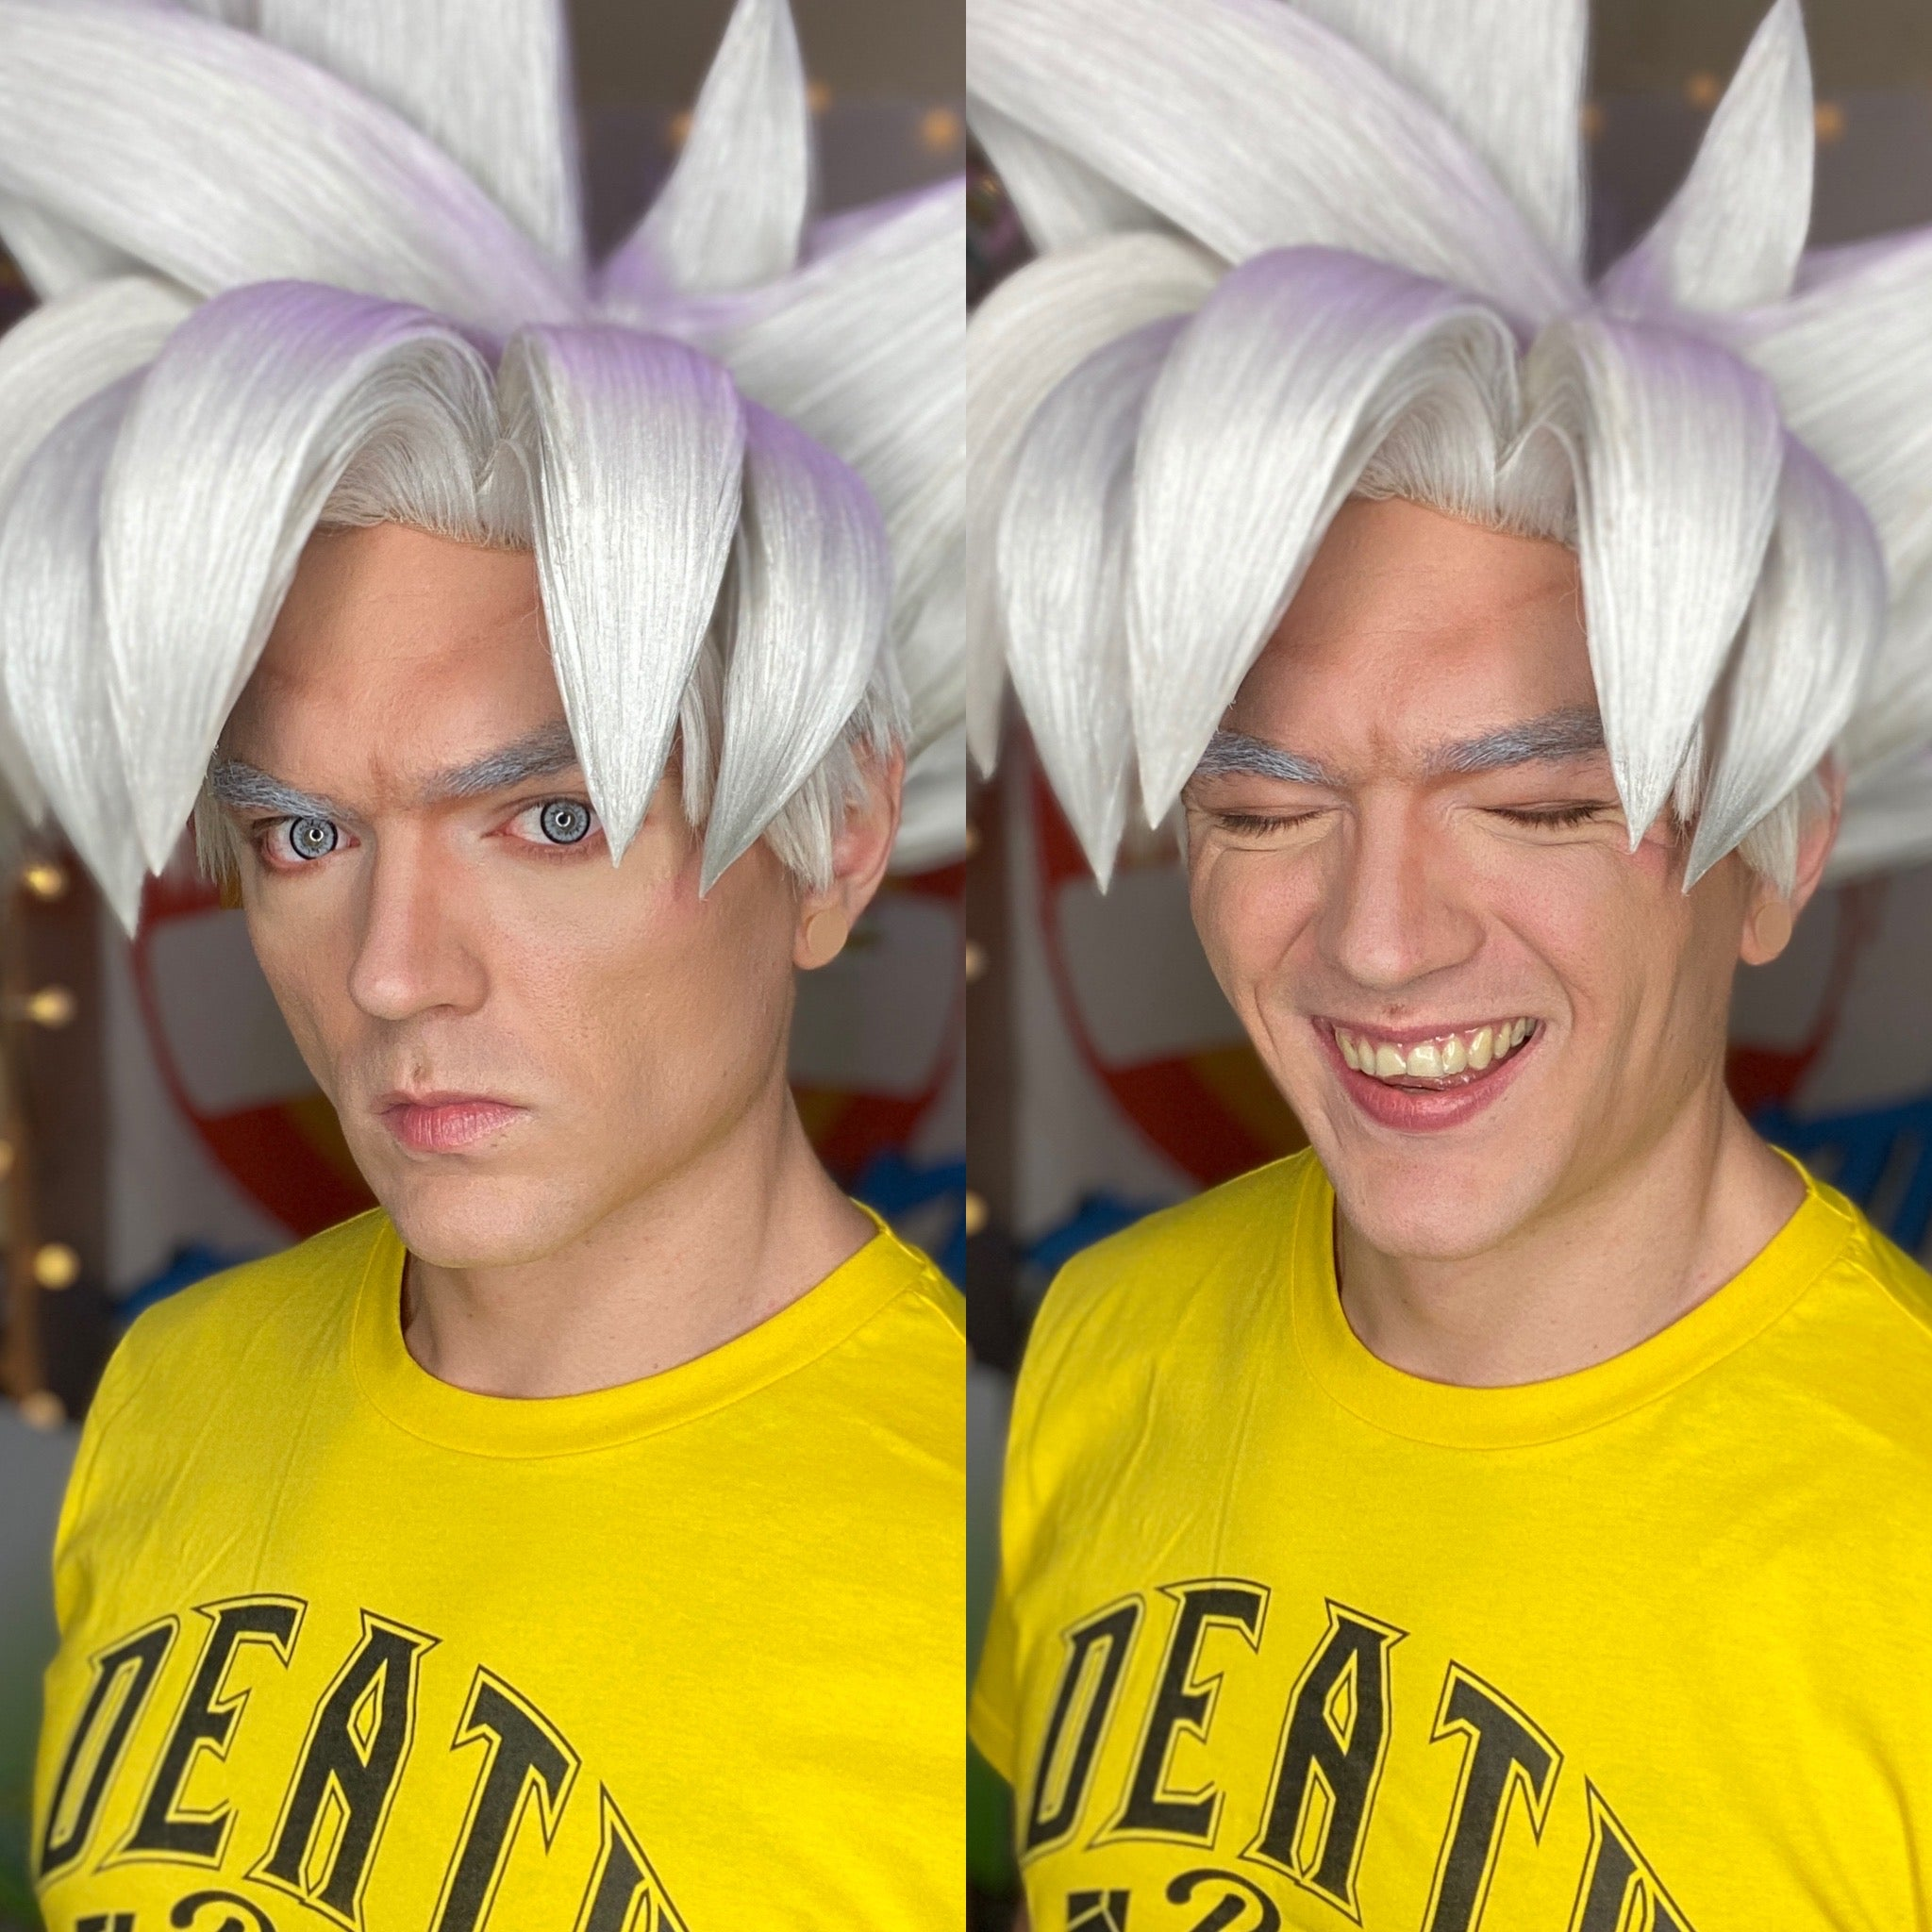 Ultra Instinct Goku cosplay from DragonBall Super breaking into a smile